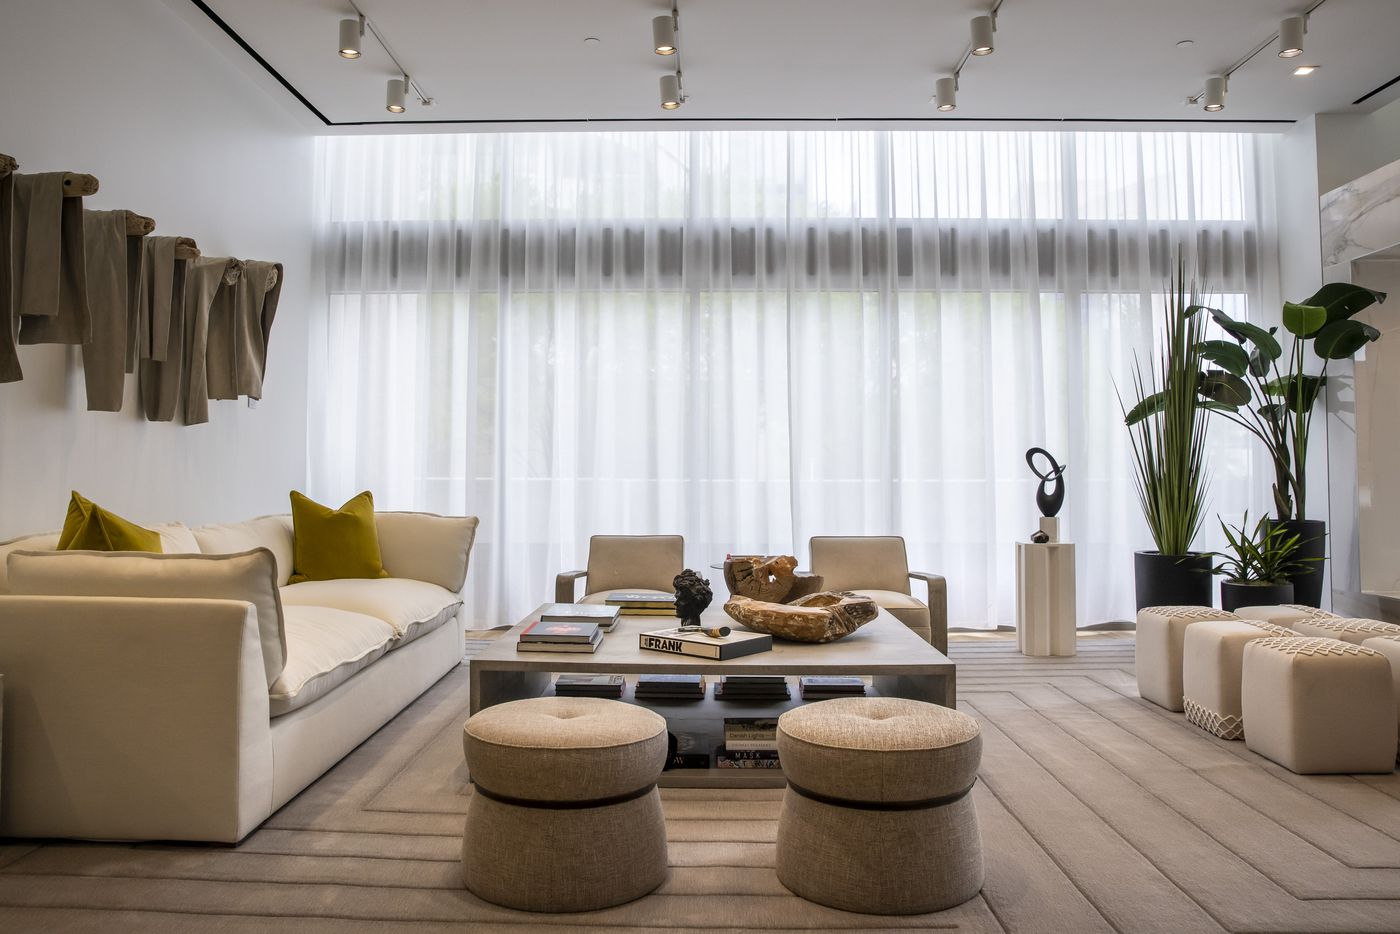 The main lobby of the Atelier, a 41-story luxury residential building in the heart of the Dallas Arts District. (Lynda M. González/The Dallas Morning News)